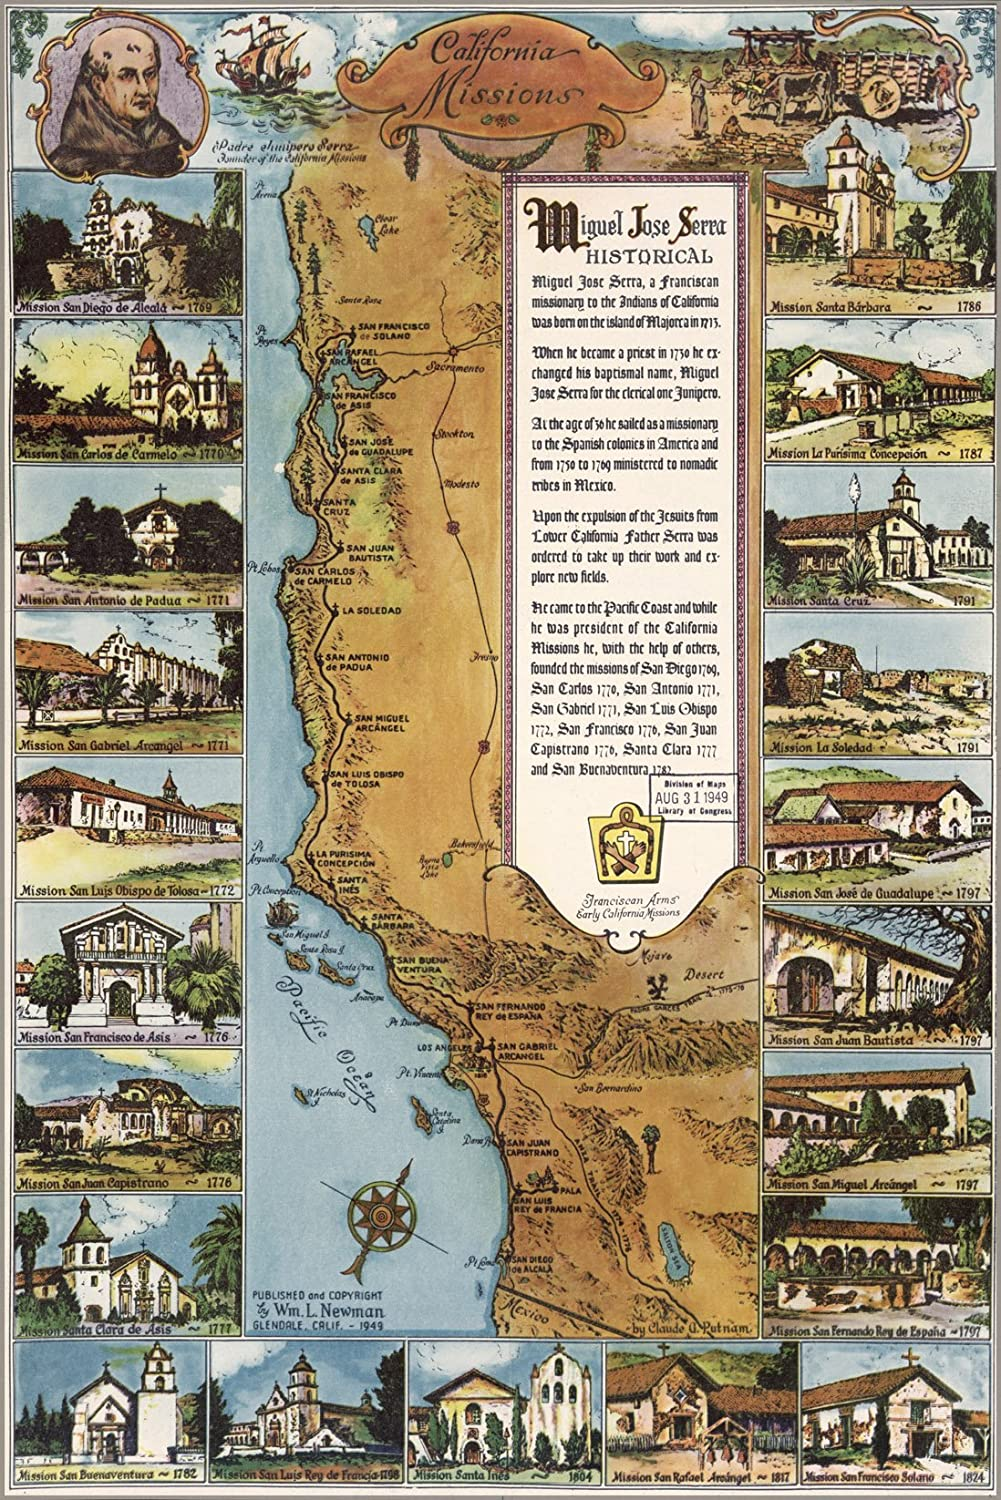 Amazoncom X Poster Map Of California Missions Antique - California missions map